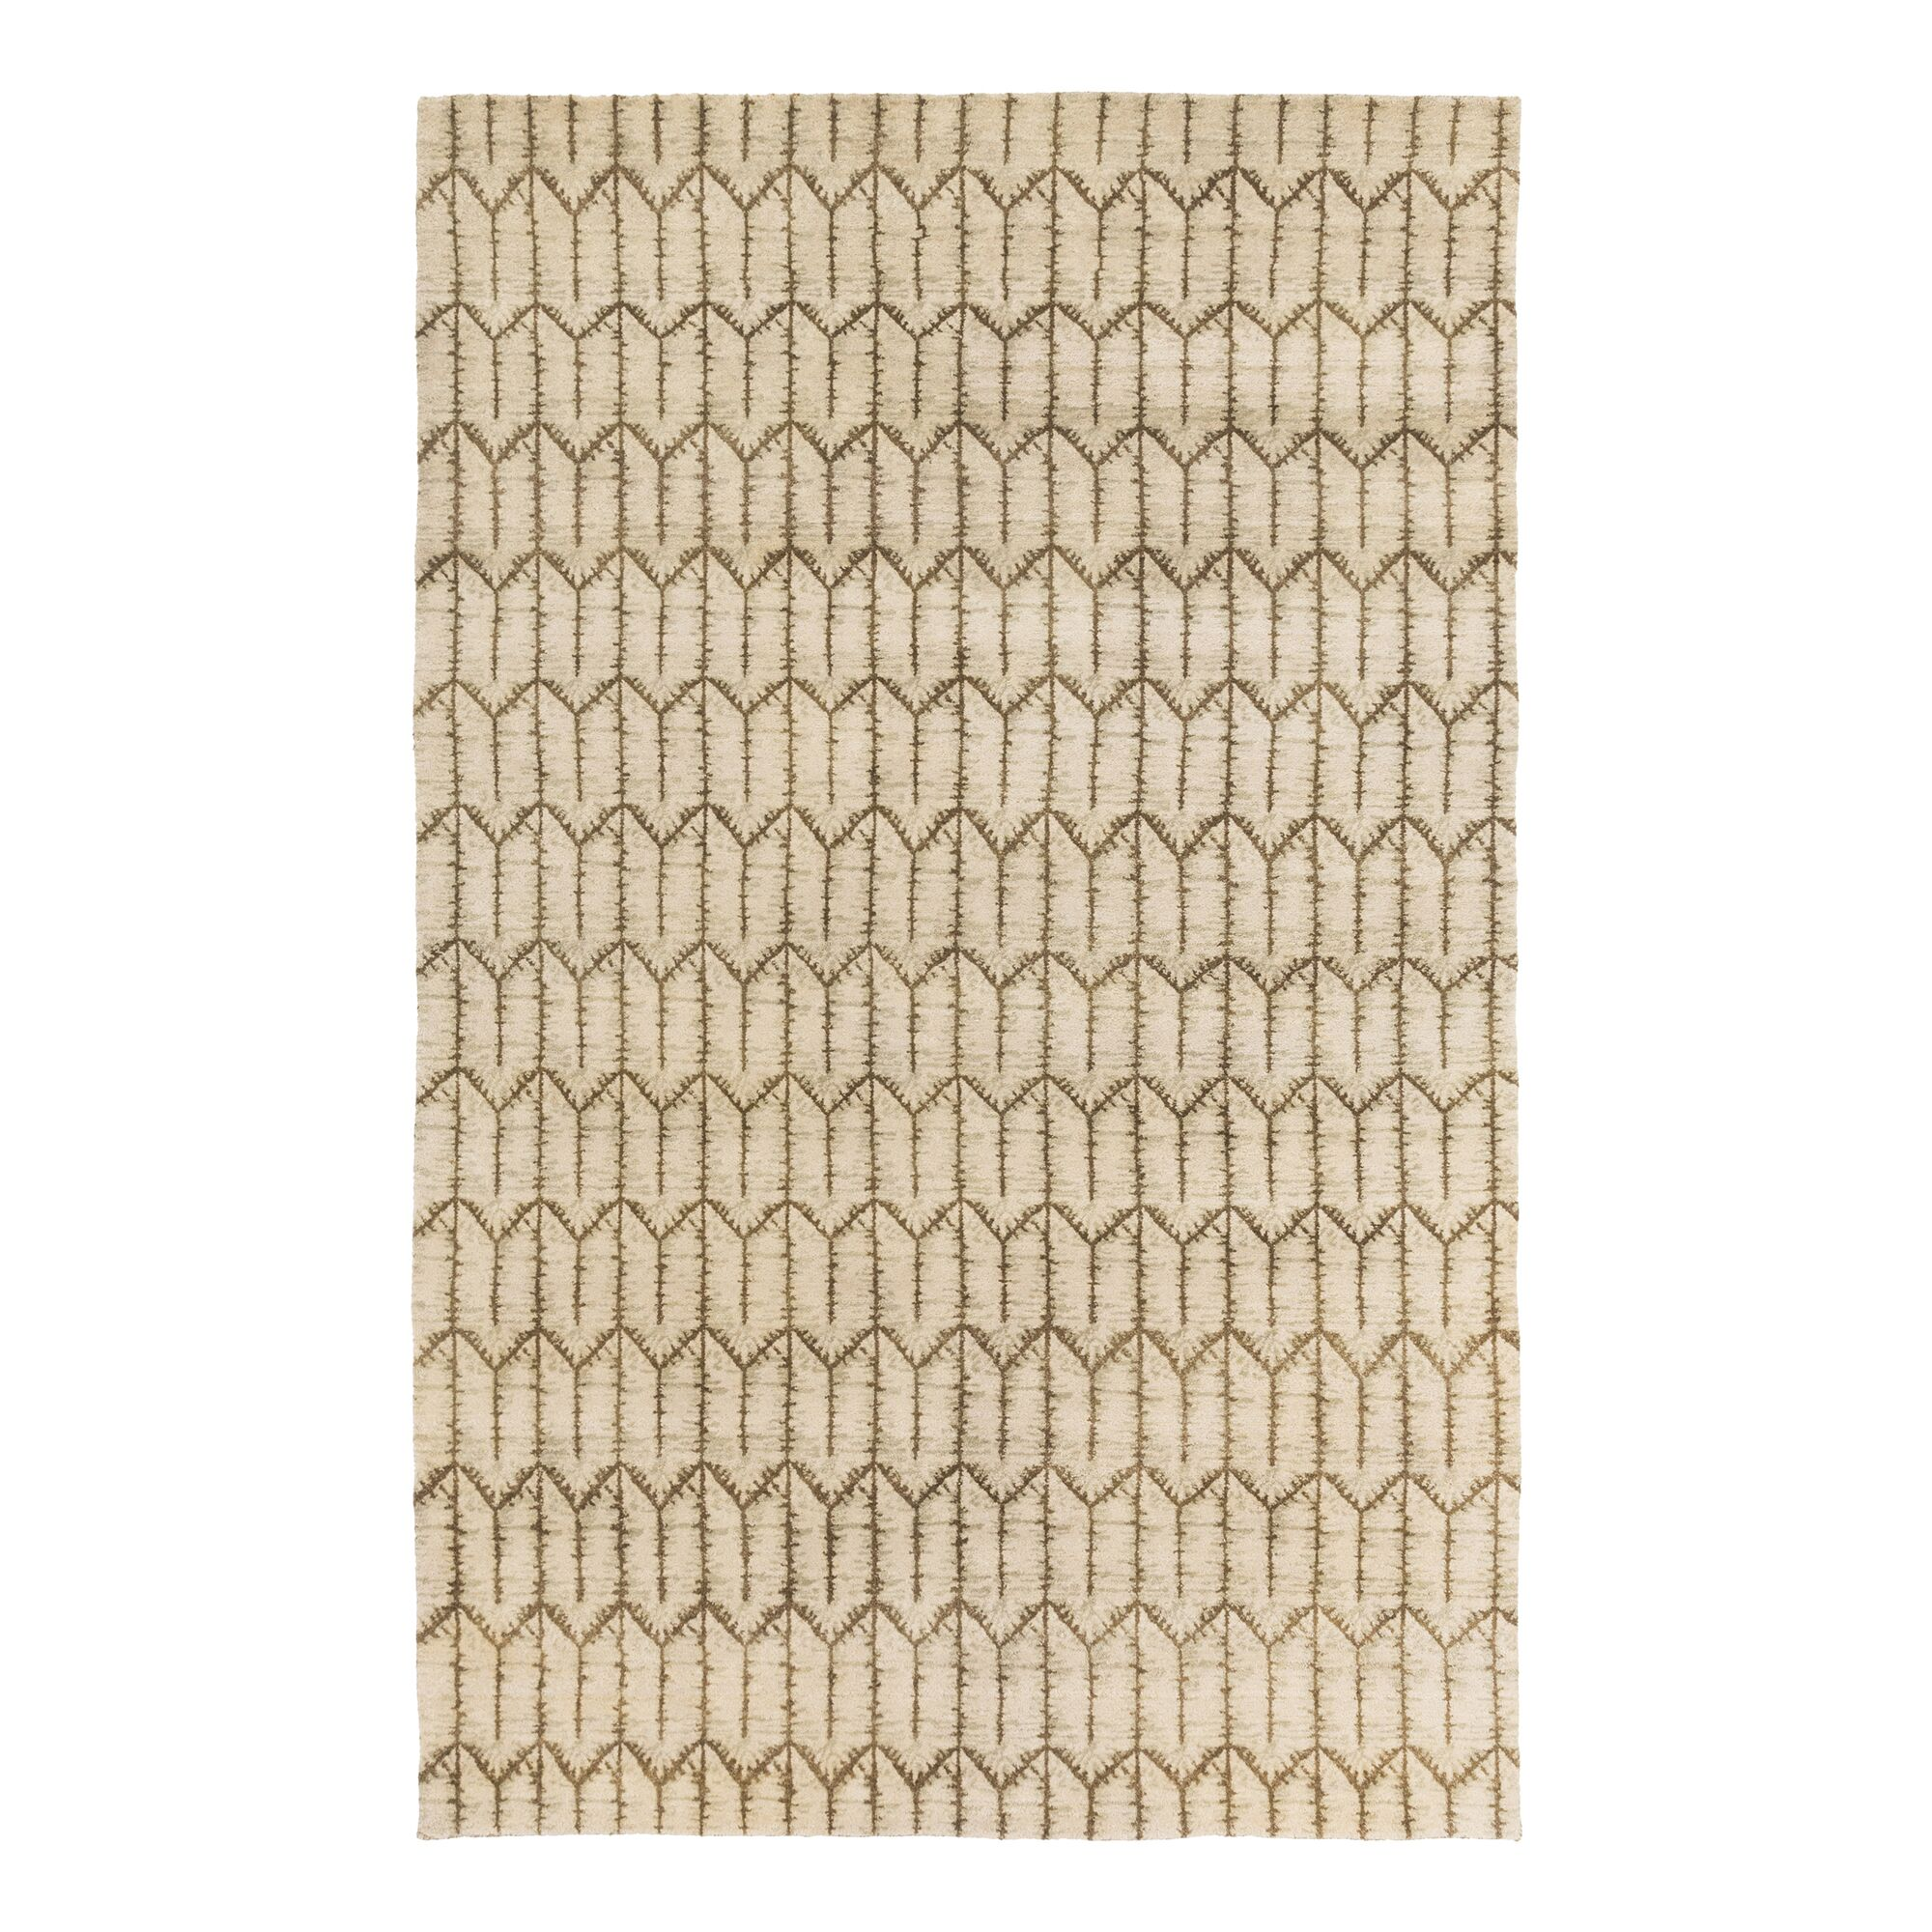 Tile Hand Knotted Brindle Area Rug Rug Size: Rectangle 9' x 13'